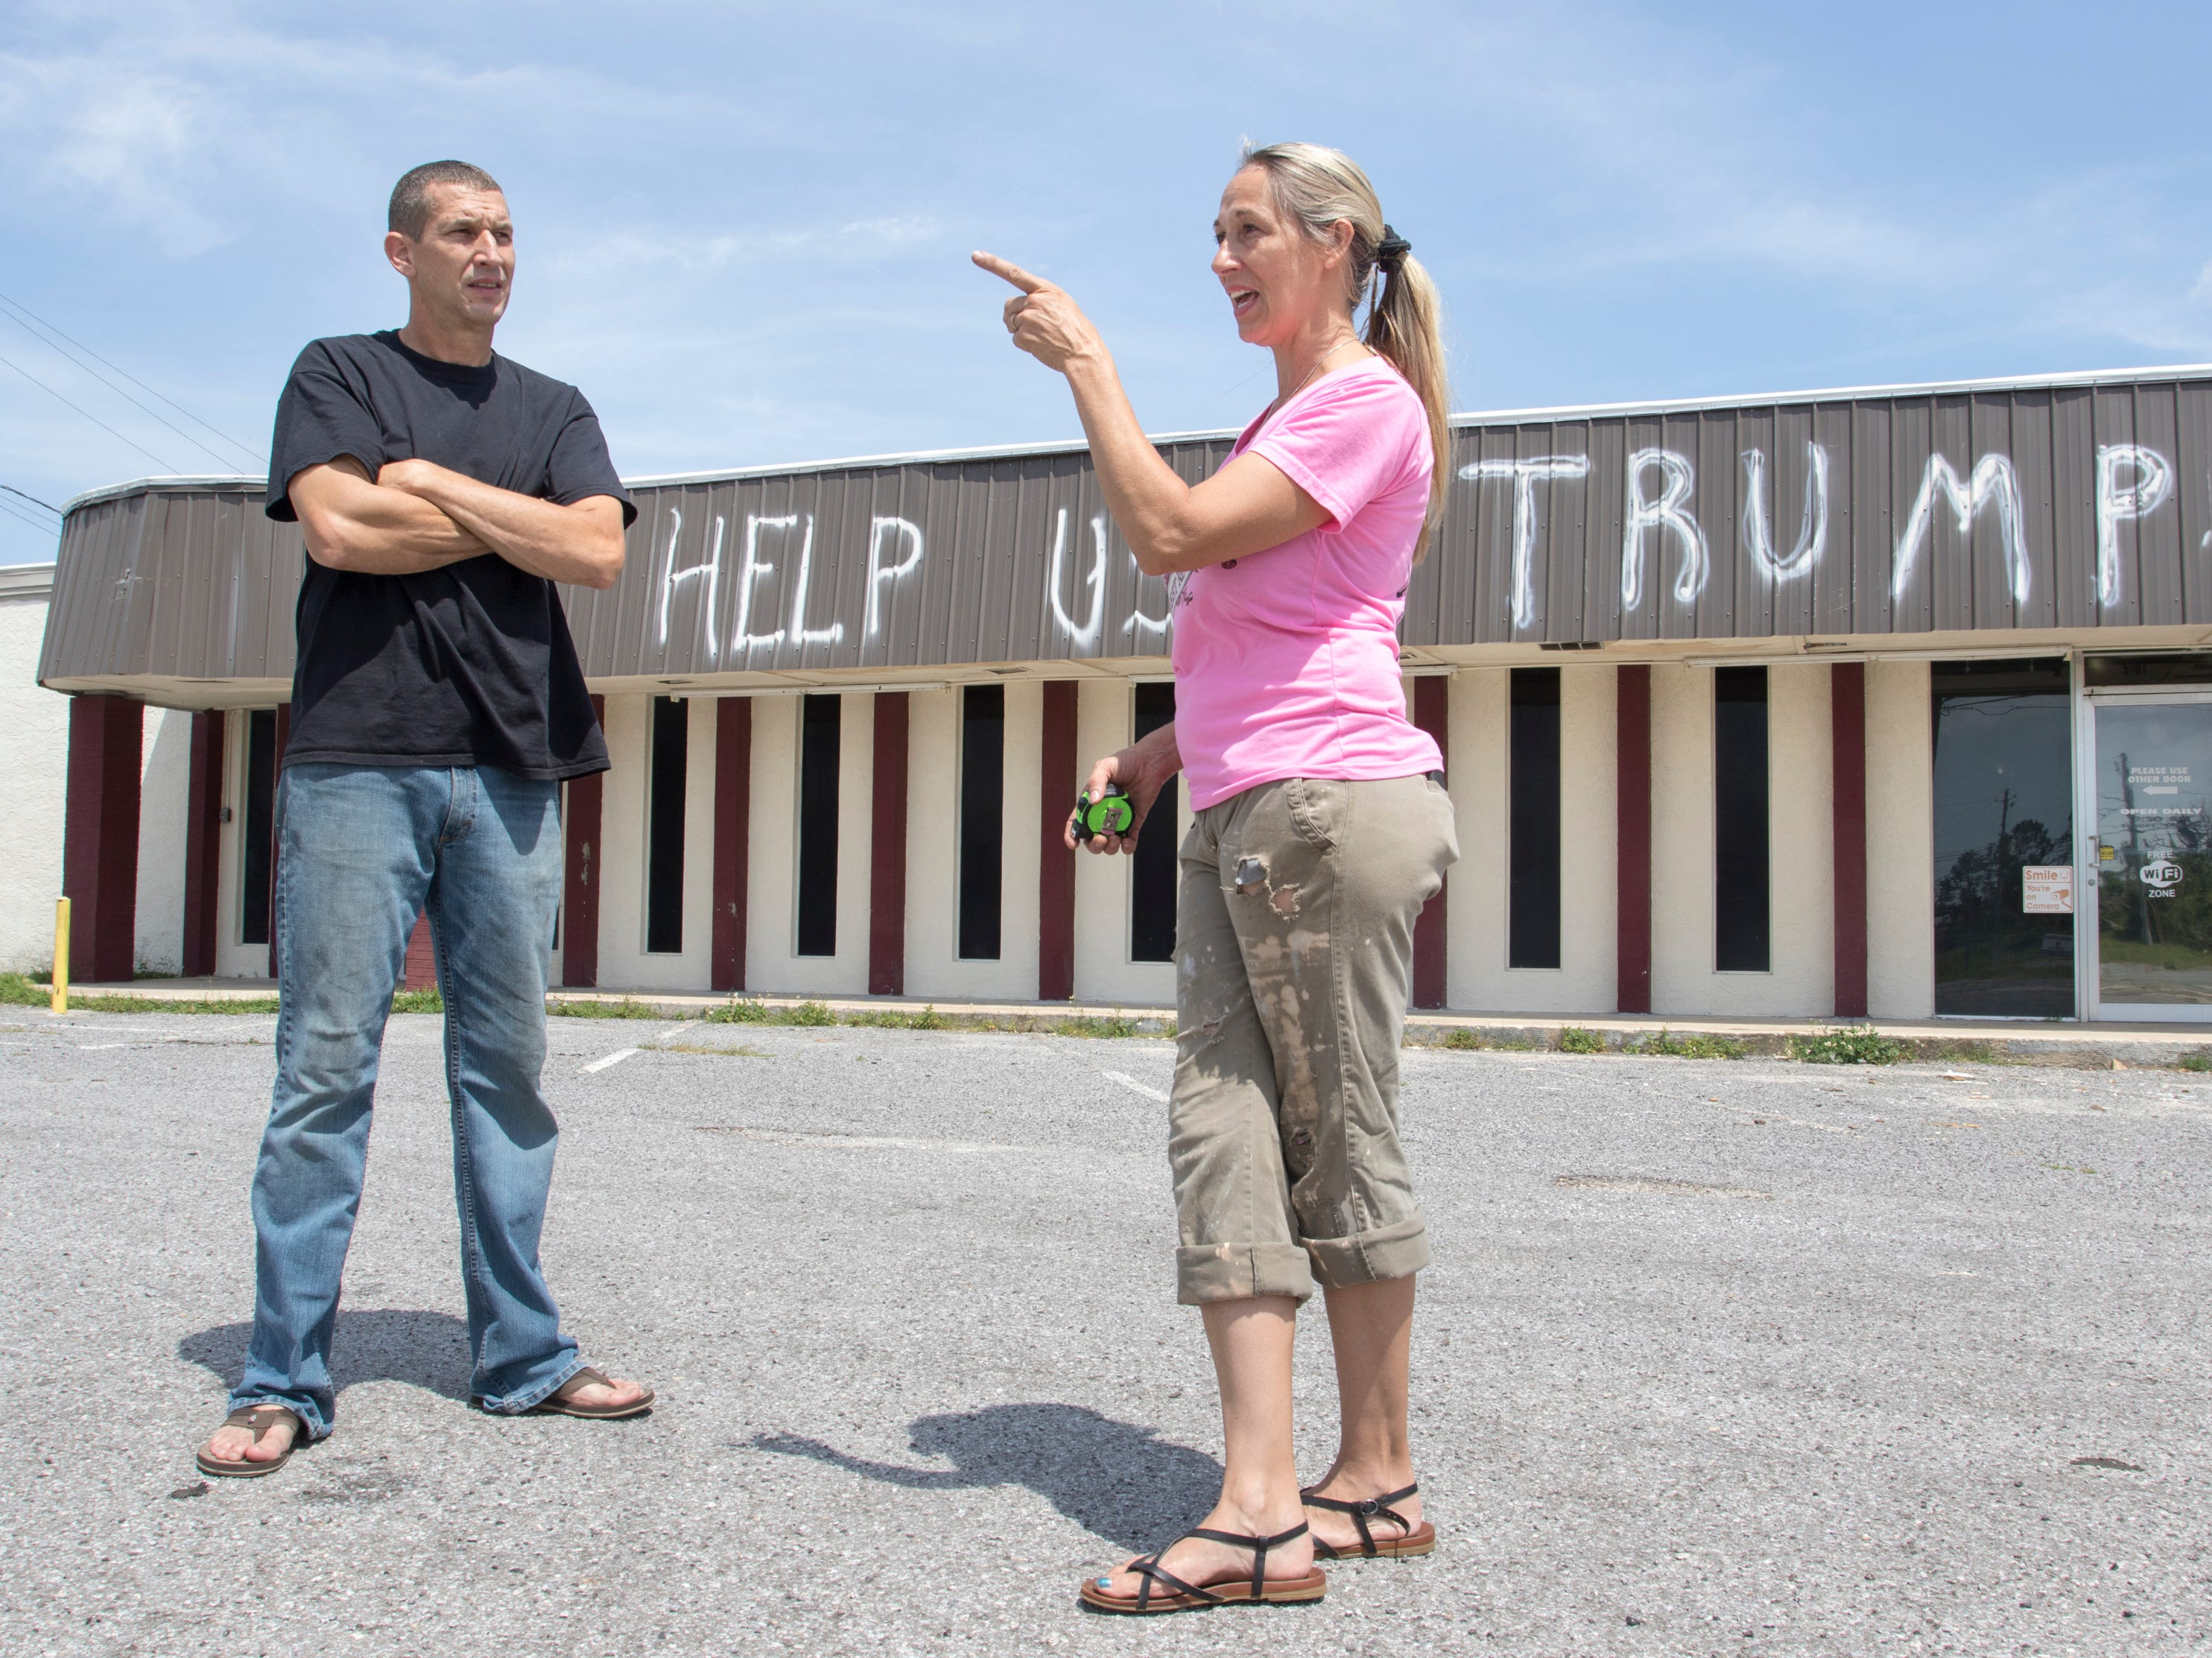 Jamie and Jennifer Burton talk about rebuilding their business after Hurricane Michael in the Panama City, Florida on Wednesday, May 8, 2019.